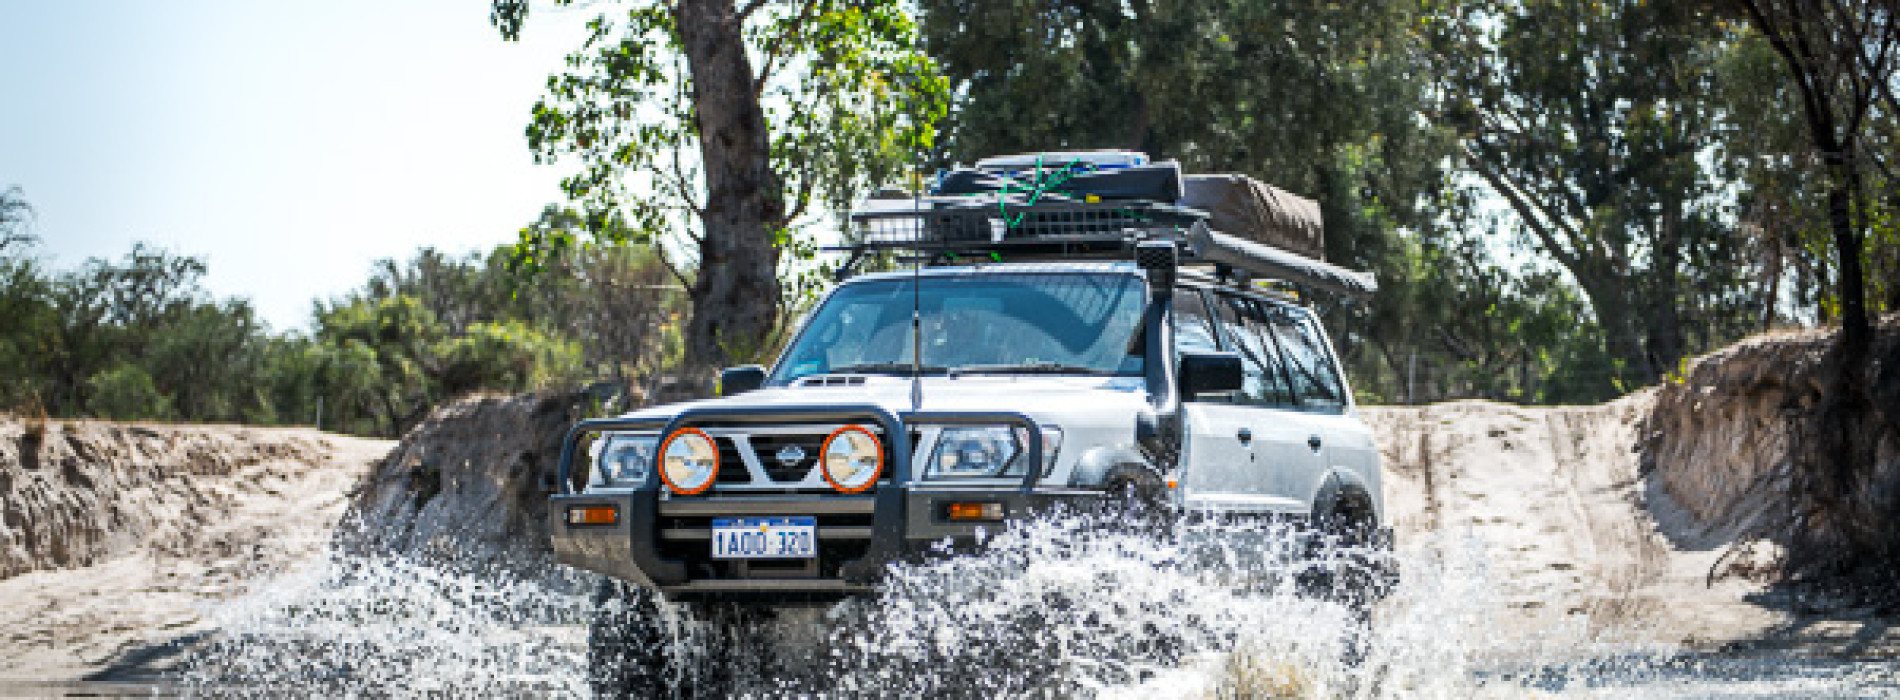 Moore River 4wd Adventure